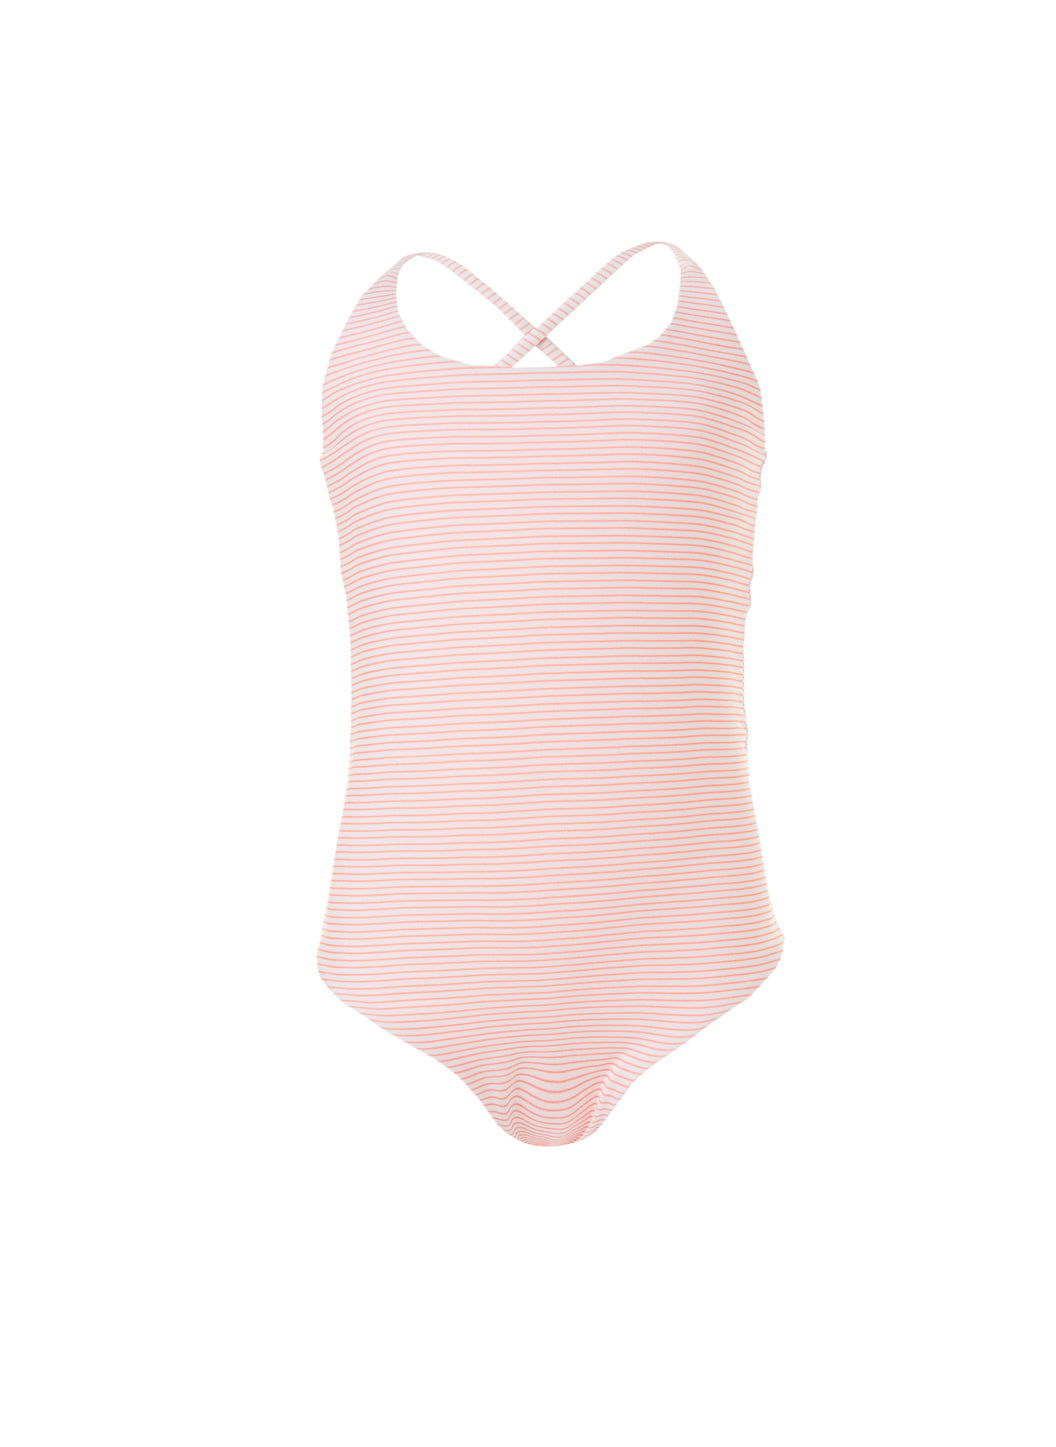 Baby Vicky Mango Stripe/Mango Cross-Back One Piece Swimsuit - Melissa Odabash Kids Swimsuits